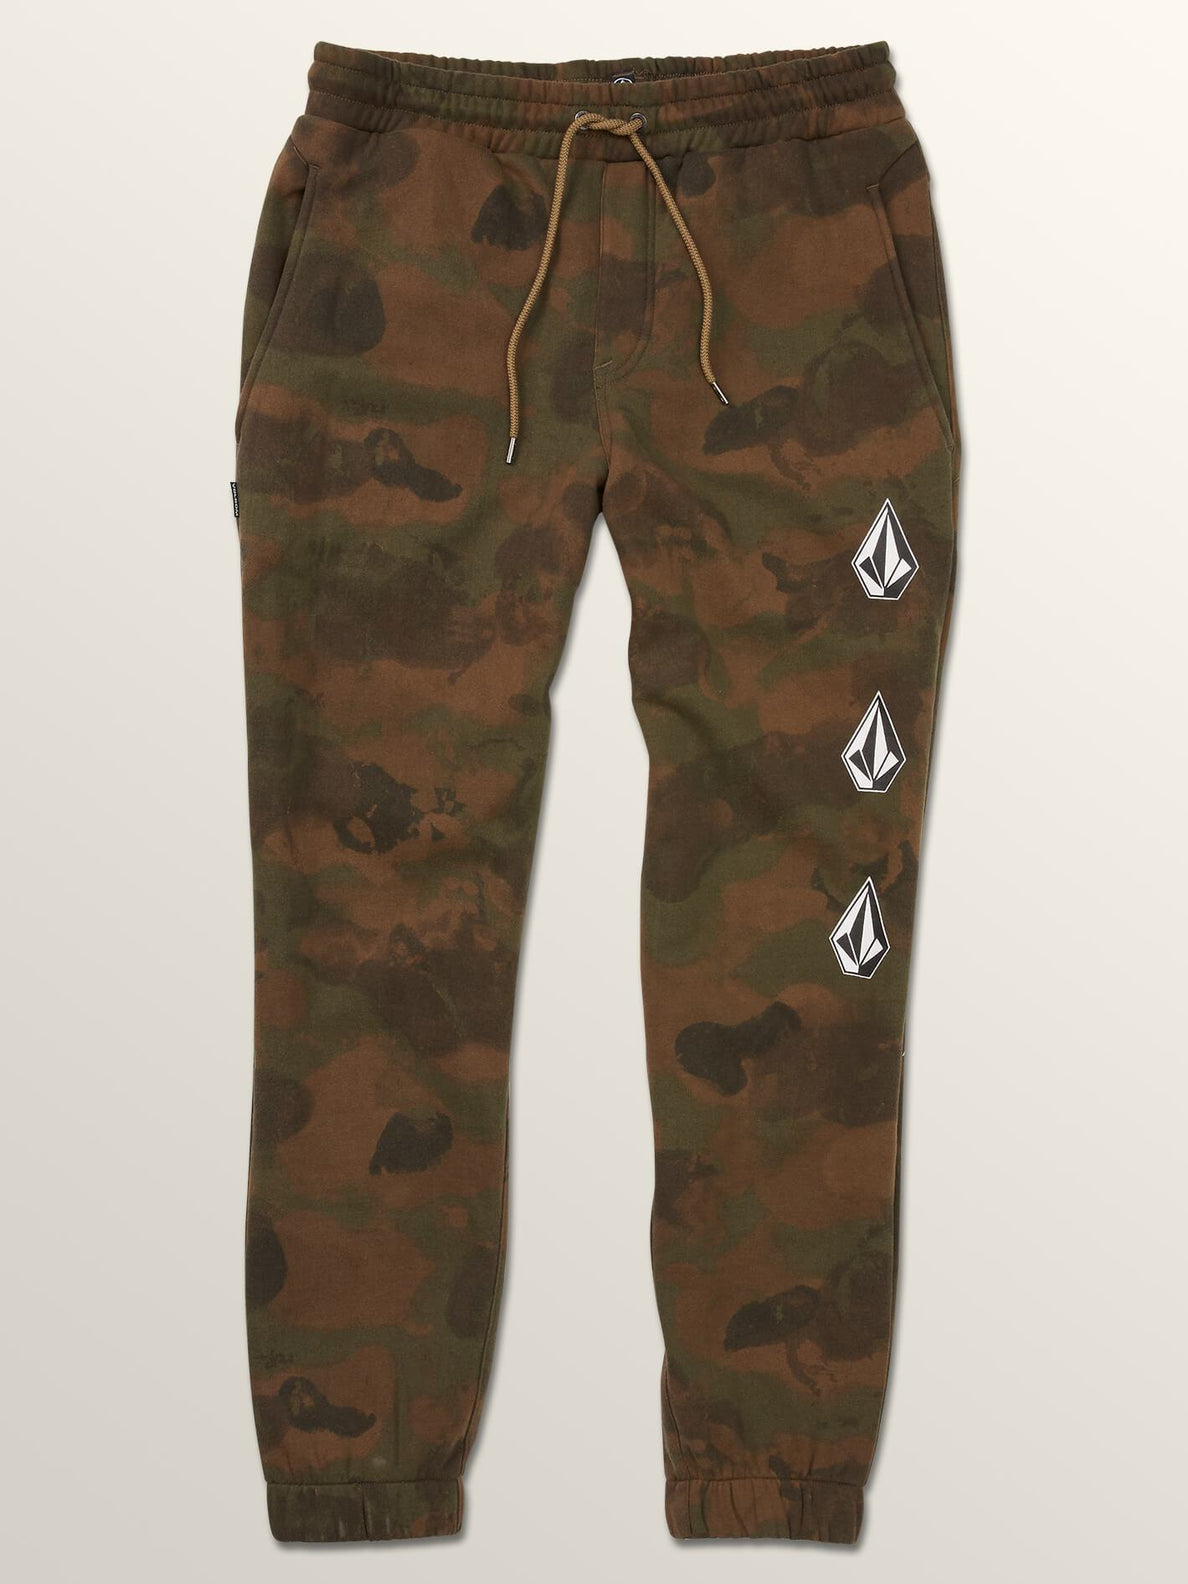 Deadly Stones Pants - Camouflage